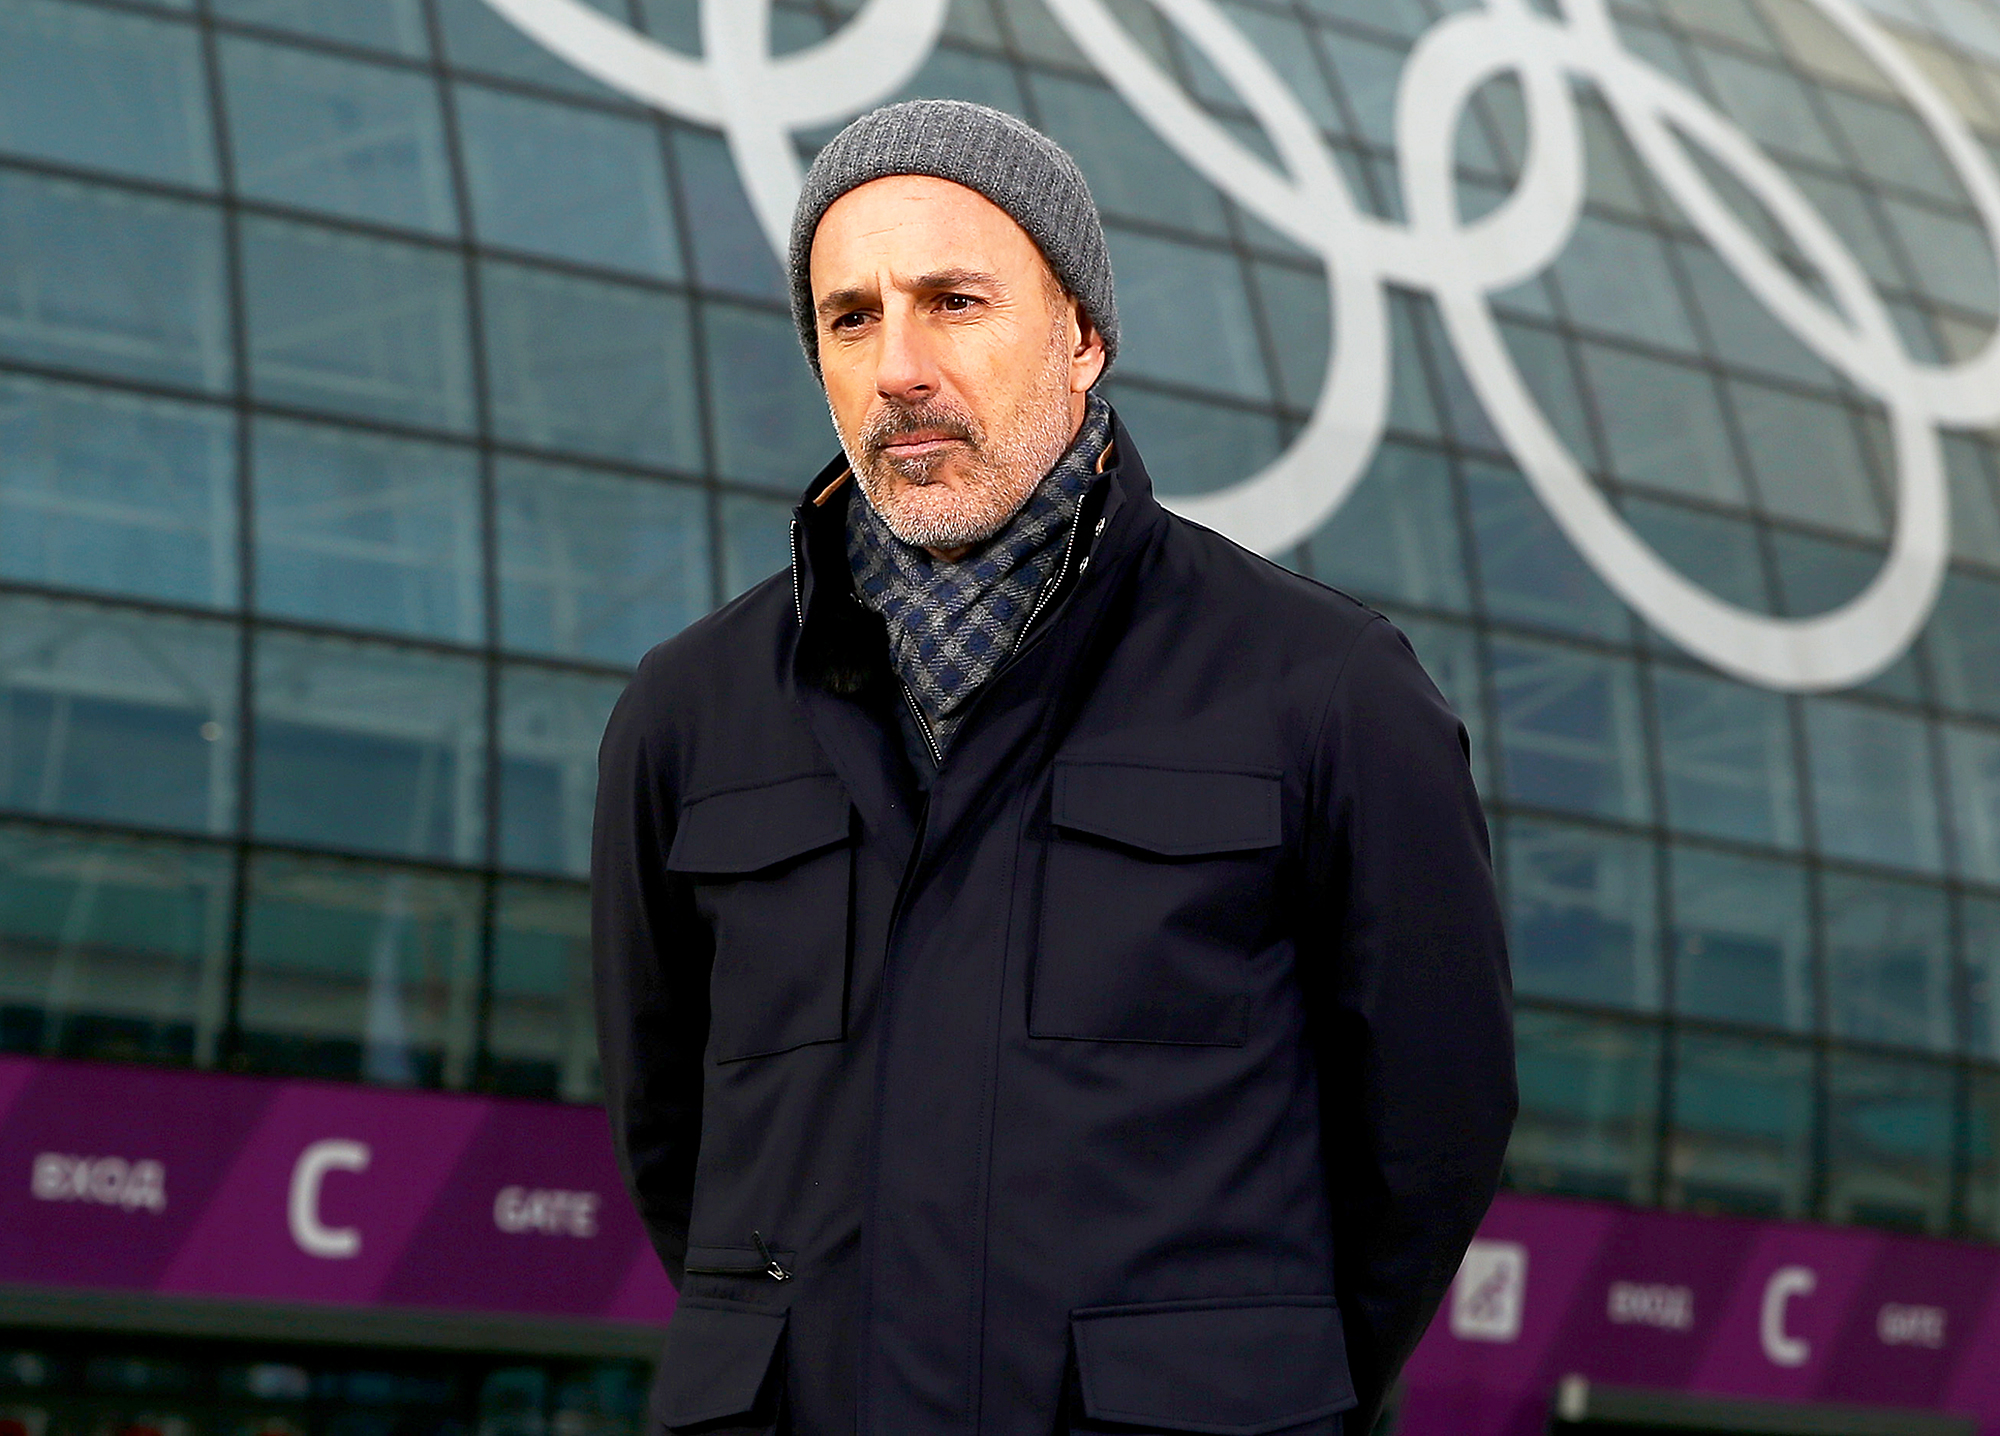 Matt Lauer during the NBC 'Today' show in the Olympic Park ahead of the Sochi 2014 Winter Olympics in Sochi, Russia.